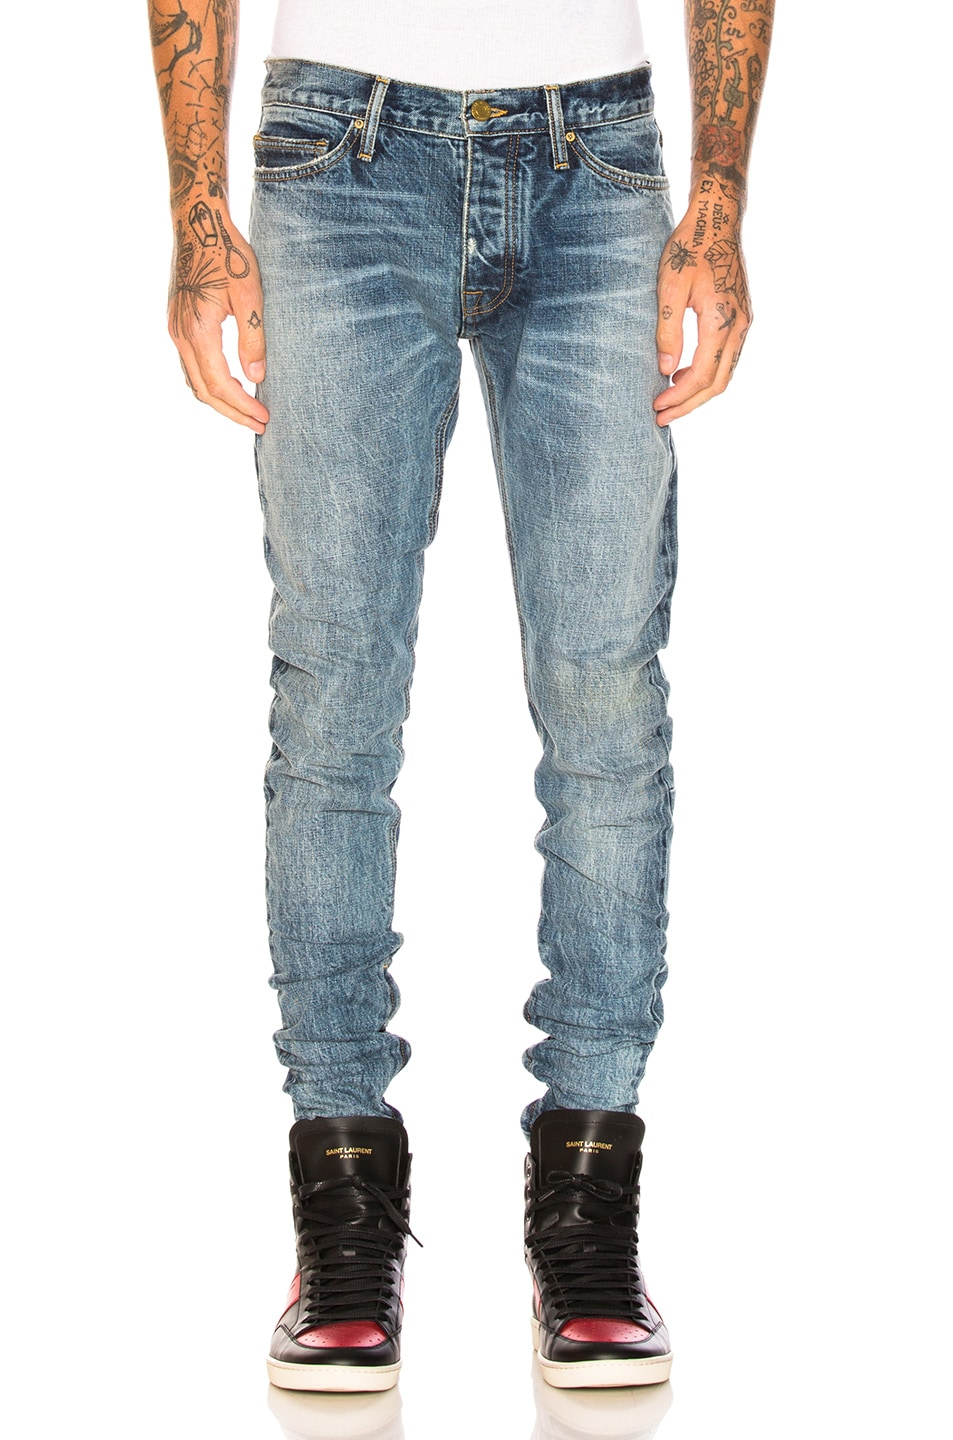 4f8b78bda5b6 FEAR OF GOD VINTAGE SELVEDGE DENIM JEANS